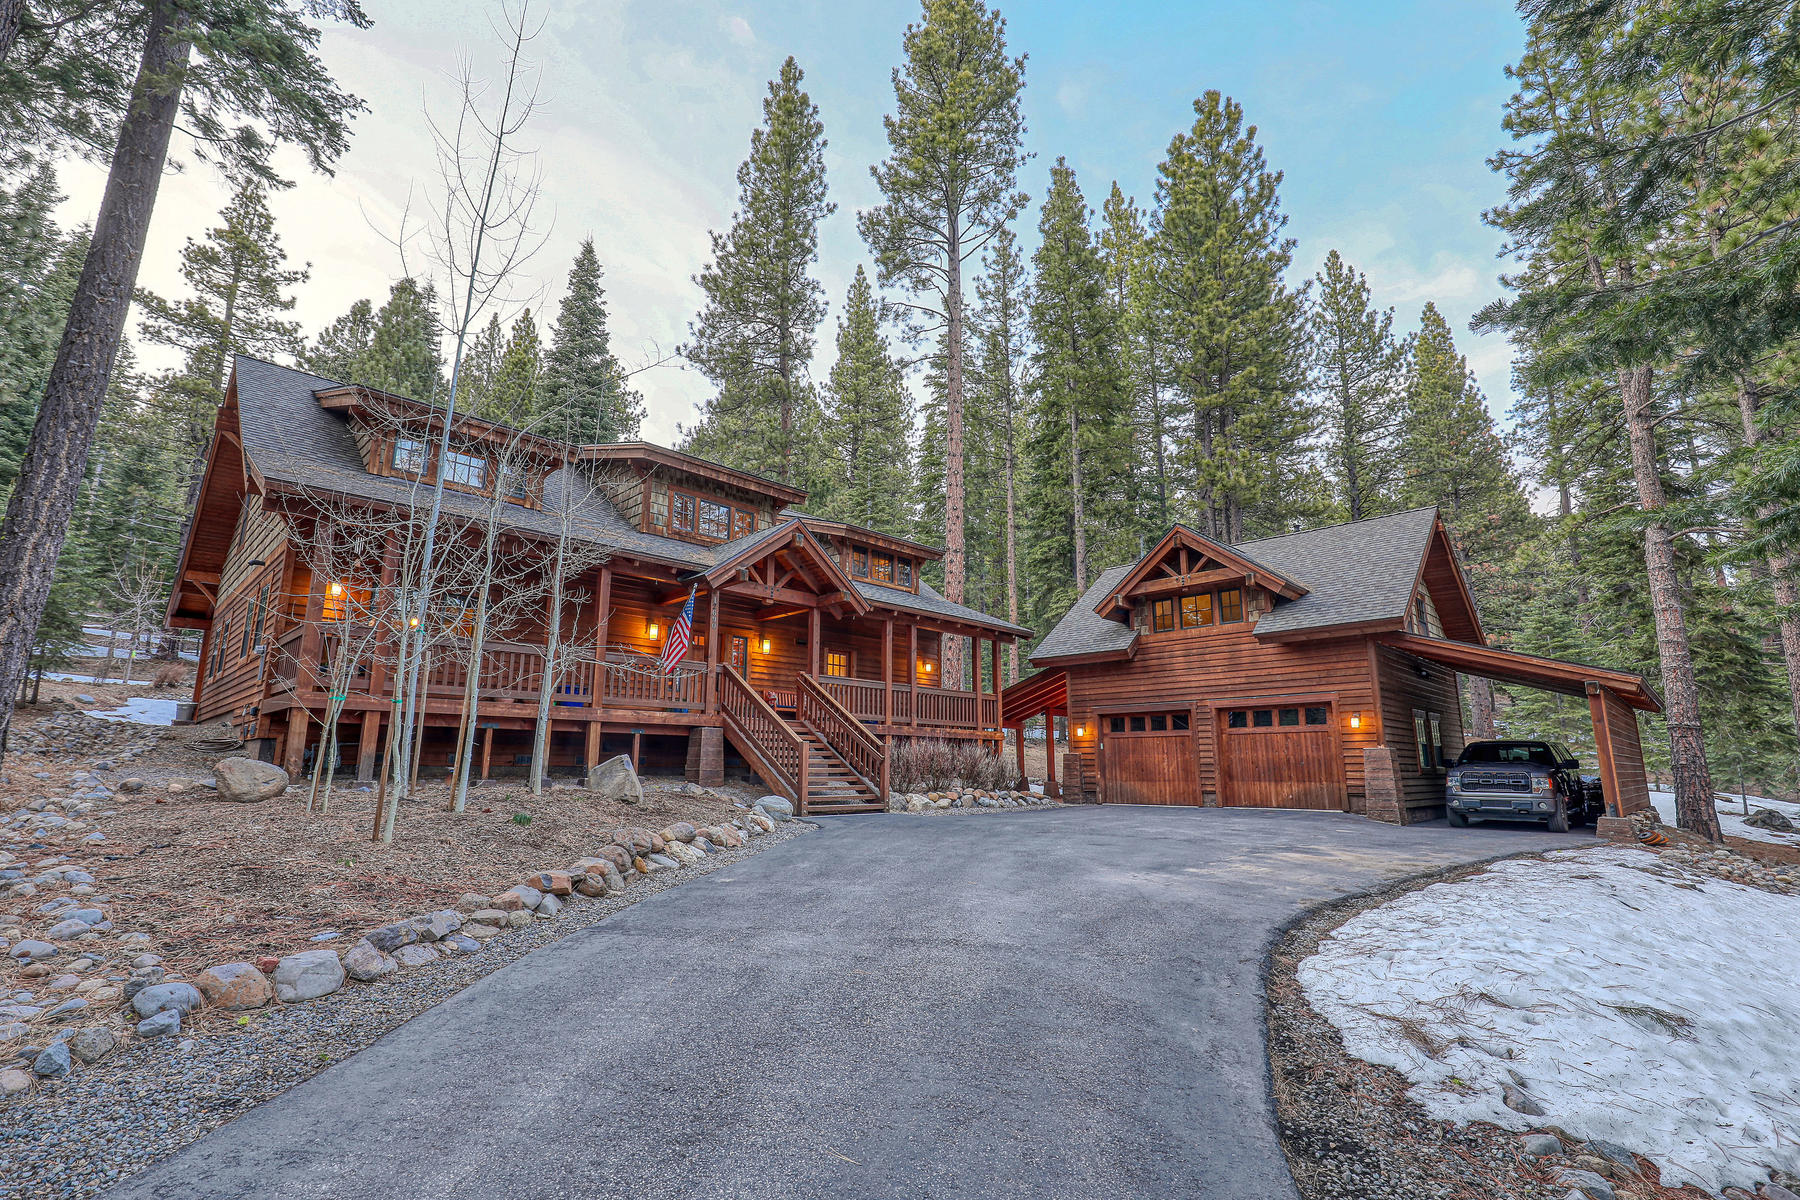 Single Family Homes for Active at Pine Forest Retreat 12690 Granite Drive Truckee, California 96161 United States